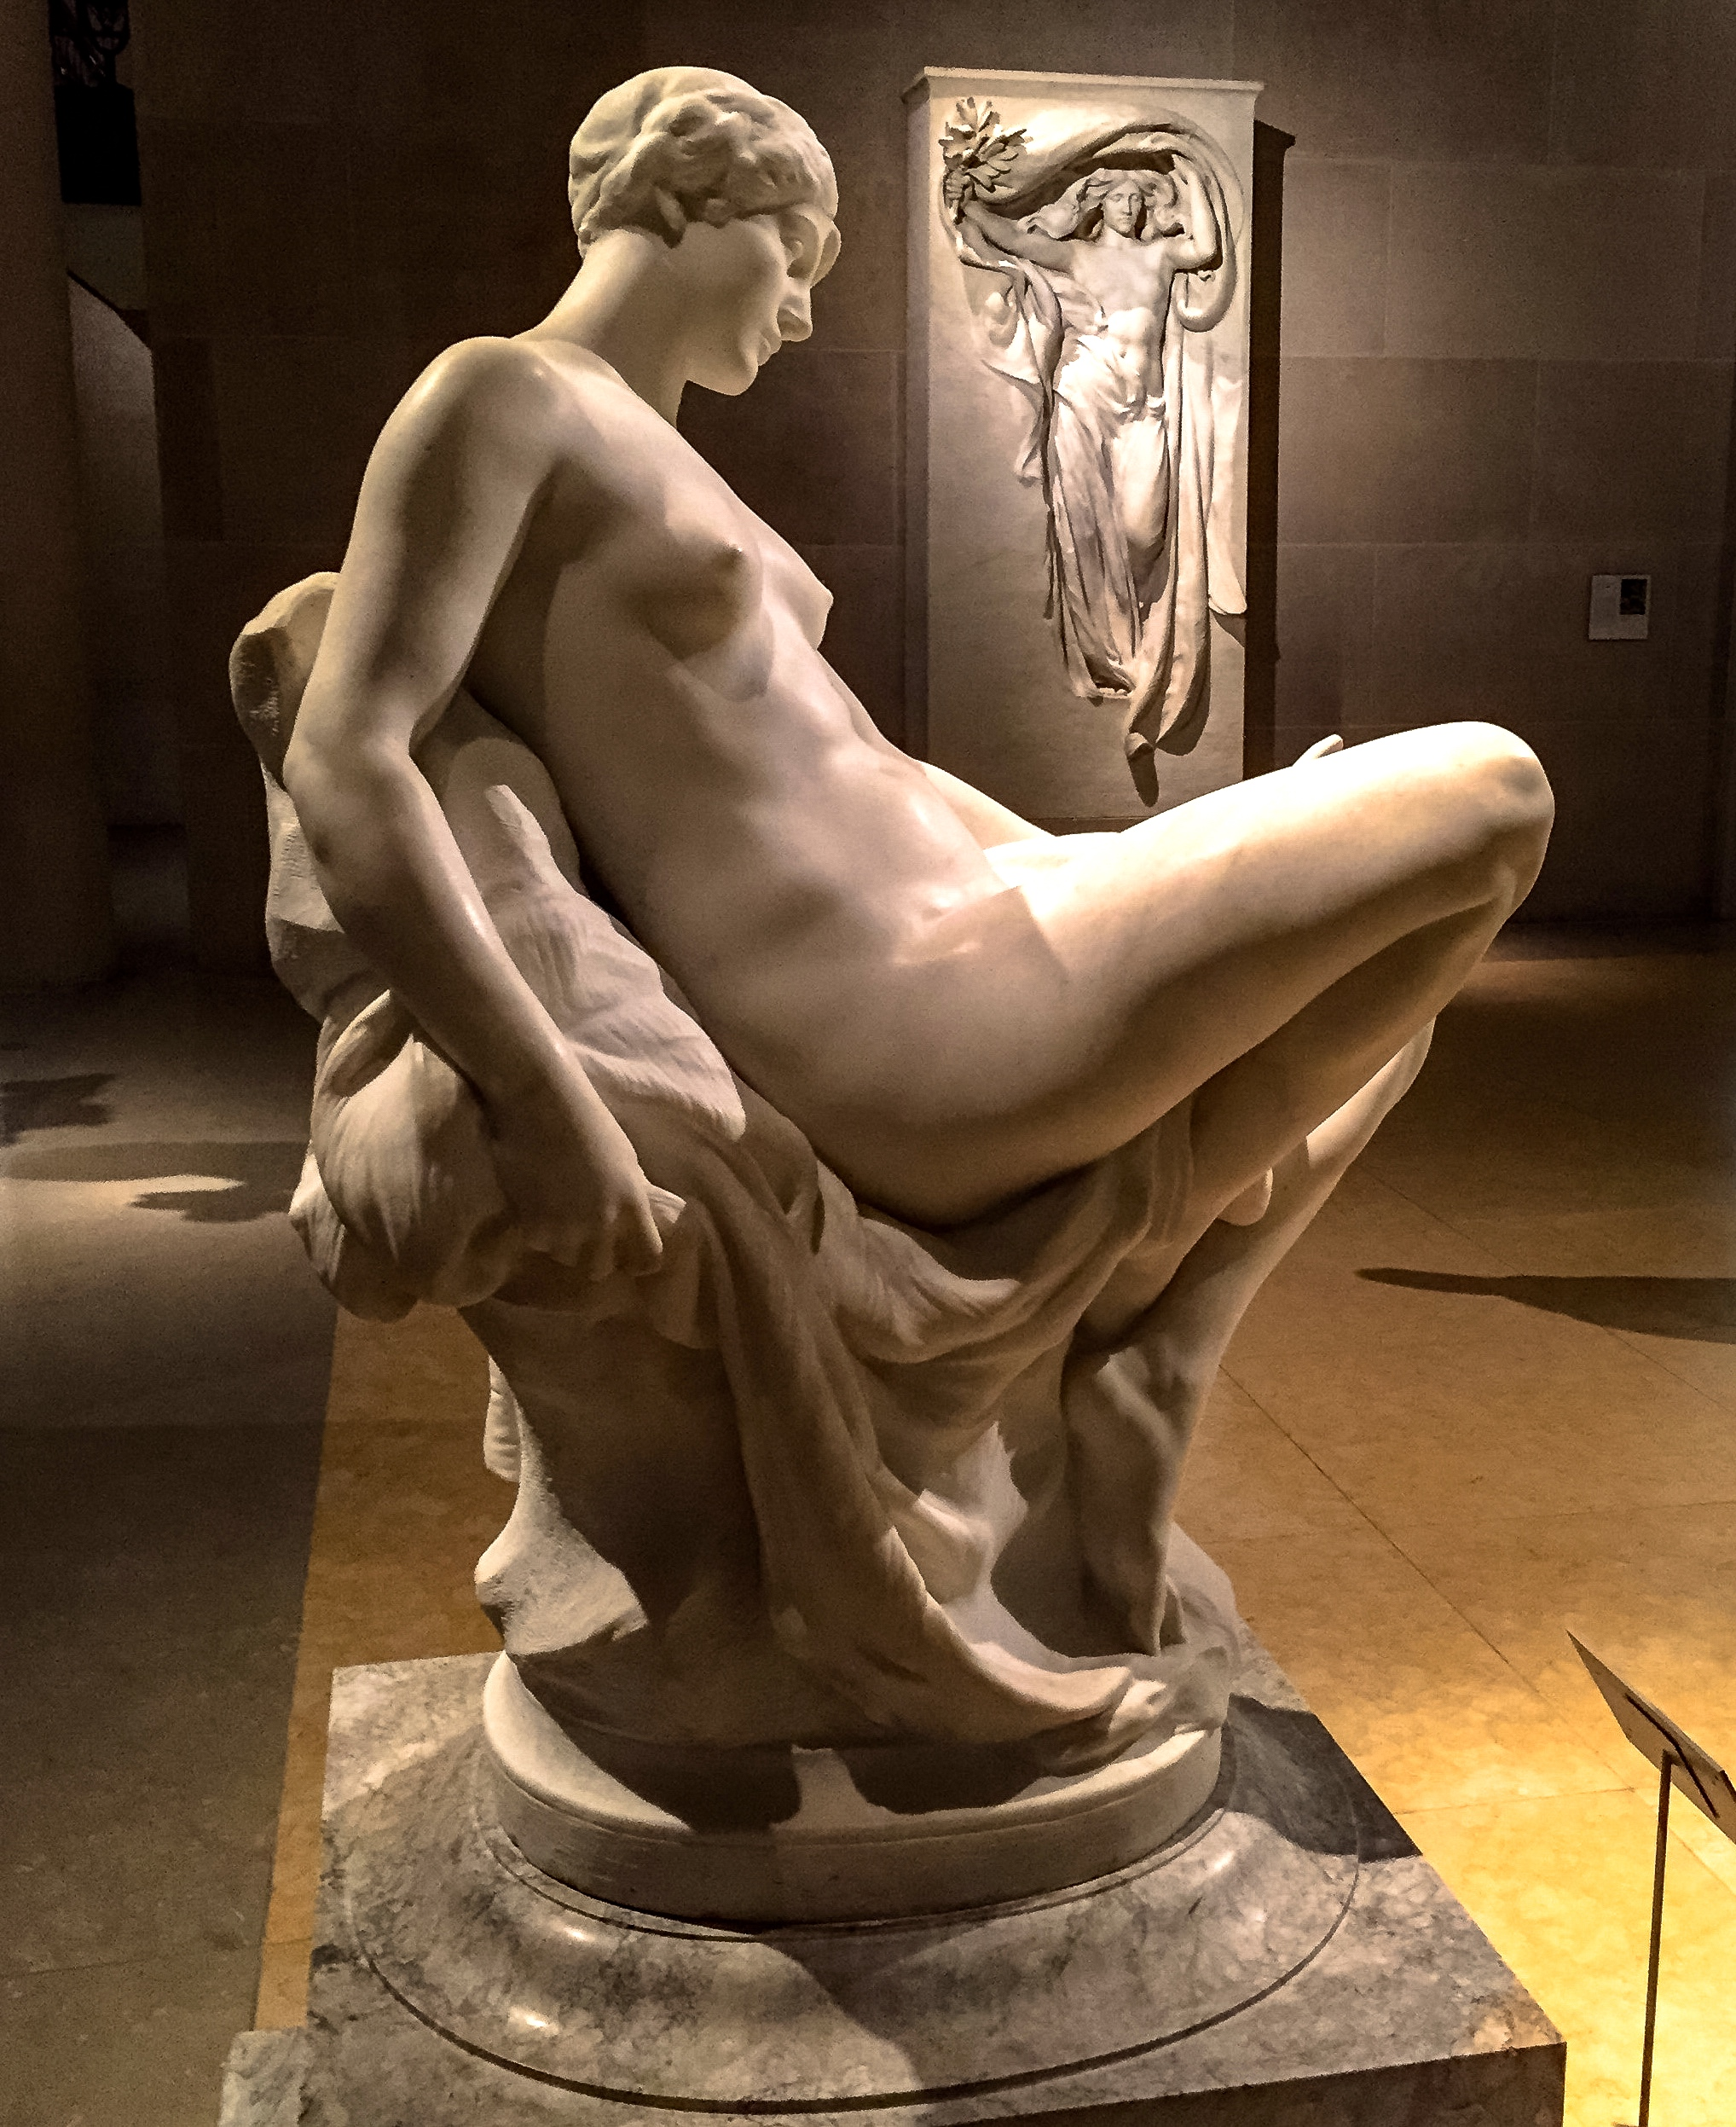 Memory  (foreground and bottom left) and  Mourning Victory  (background and bottom right) by Daniel Chester French.  Second Row:  Fragilina  by Piccirilli (left) and  Leda and the Swan  by Sarrazin (right).